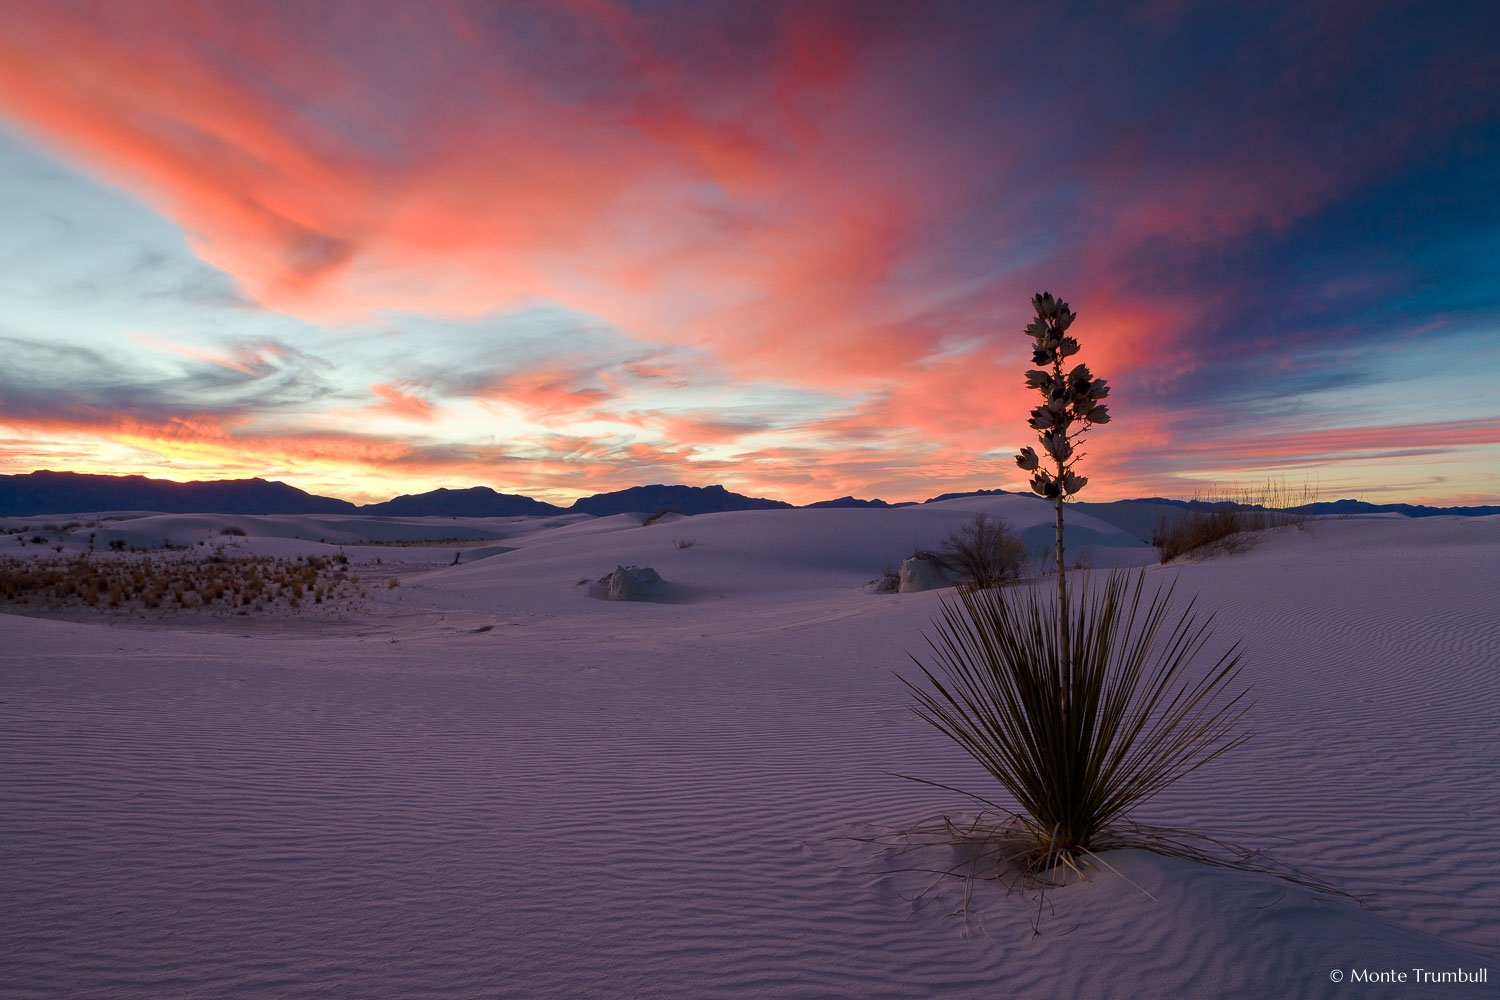 MT-20090108-172756-0037-New-Mexico-White-Sands-National-Monument-yucca-sunset-pink-skies.jpg